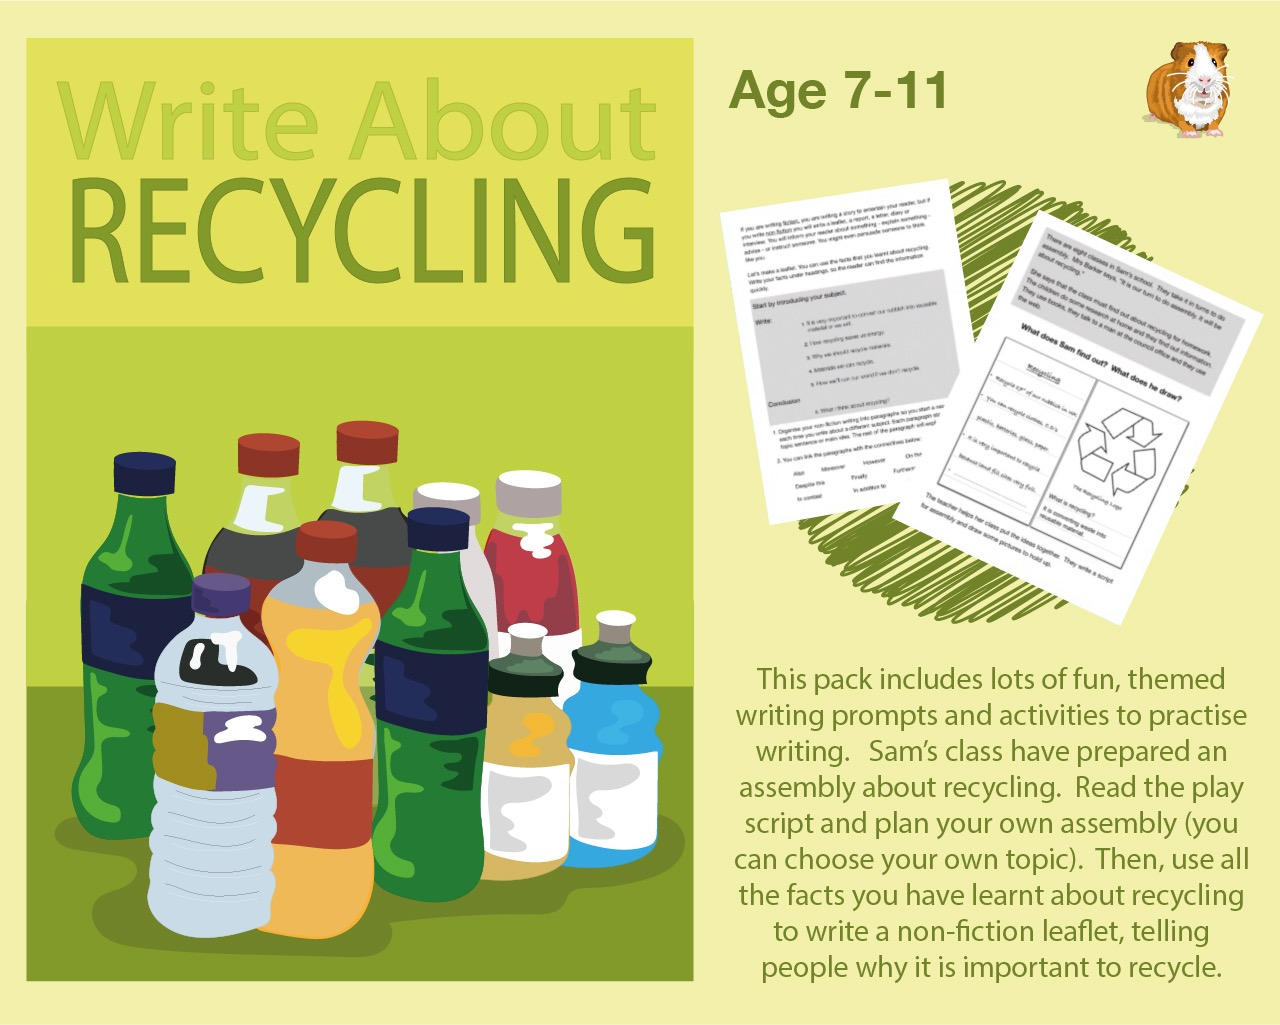 Write About Recycling (7-11 years)